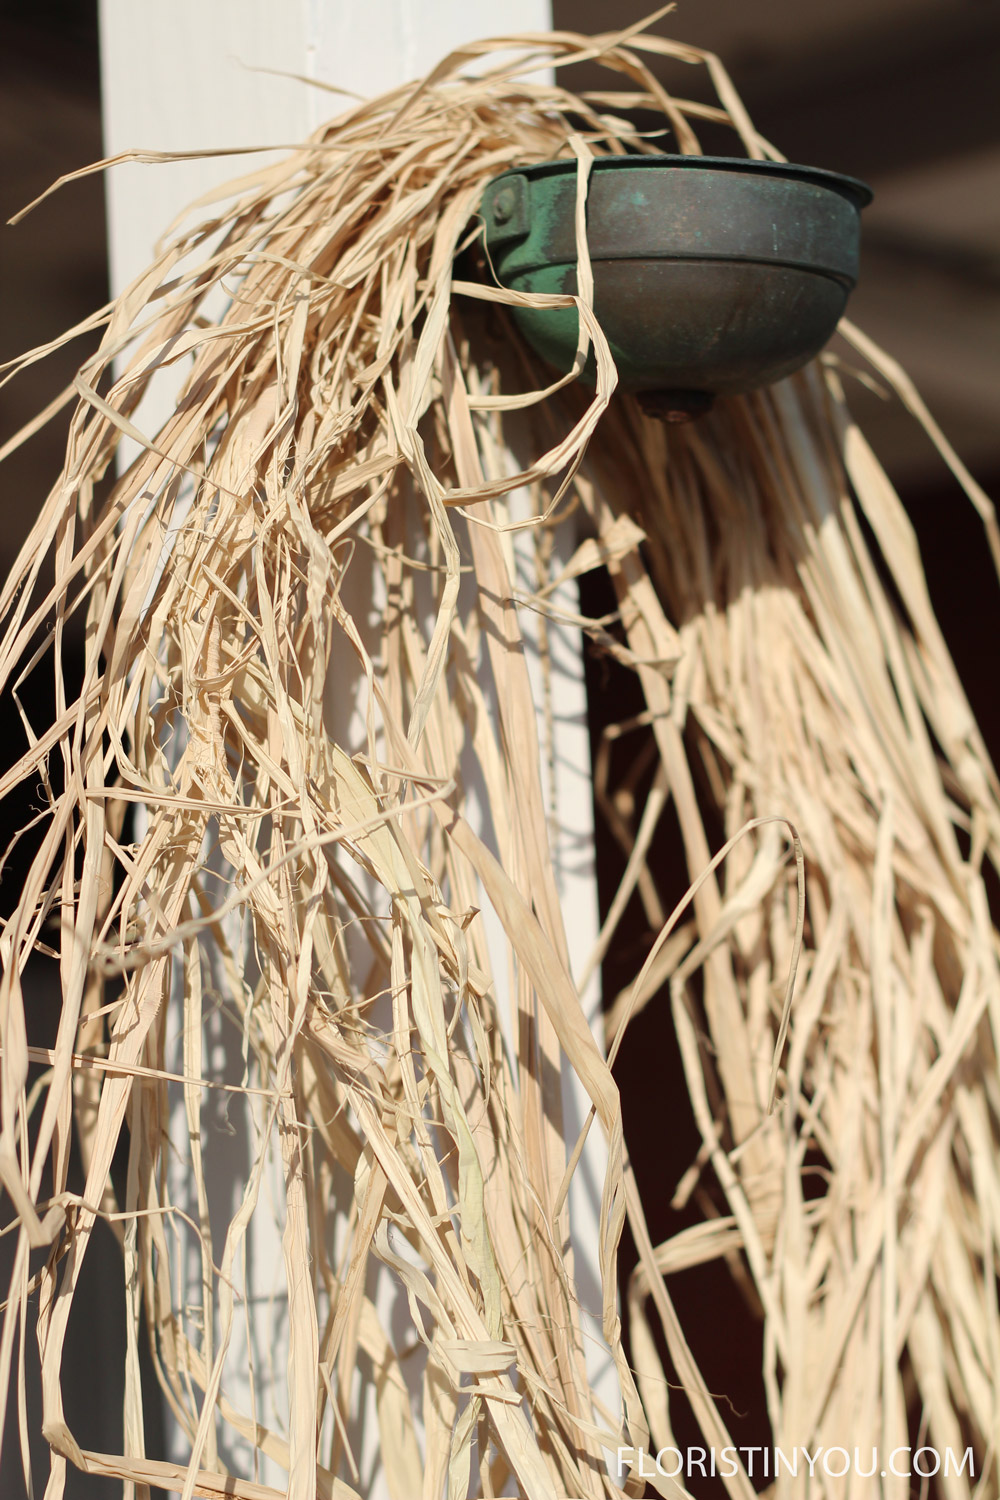 Take raffia out of bag.  Hang it on a hook, or over something.